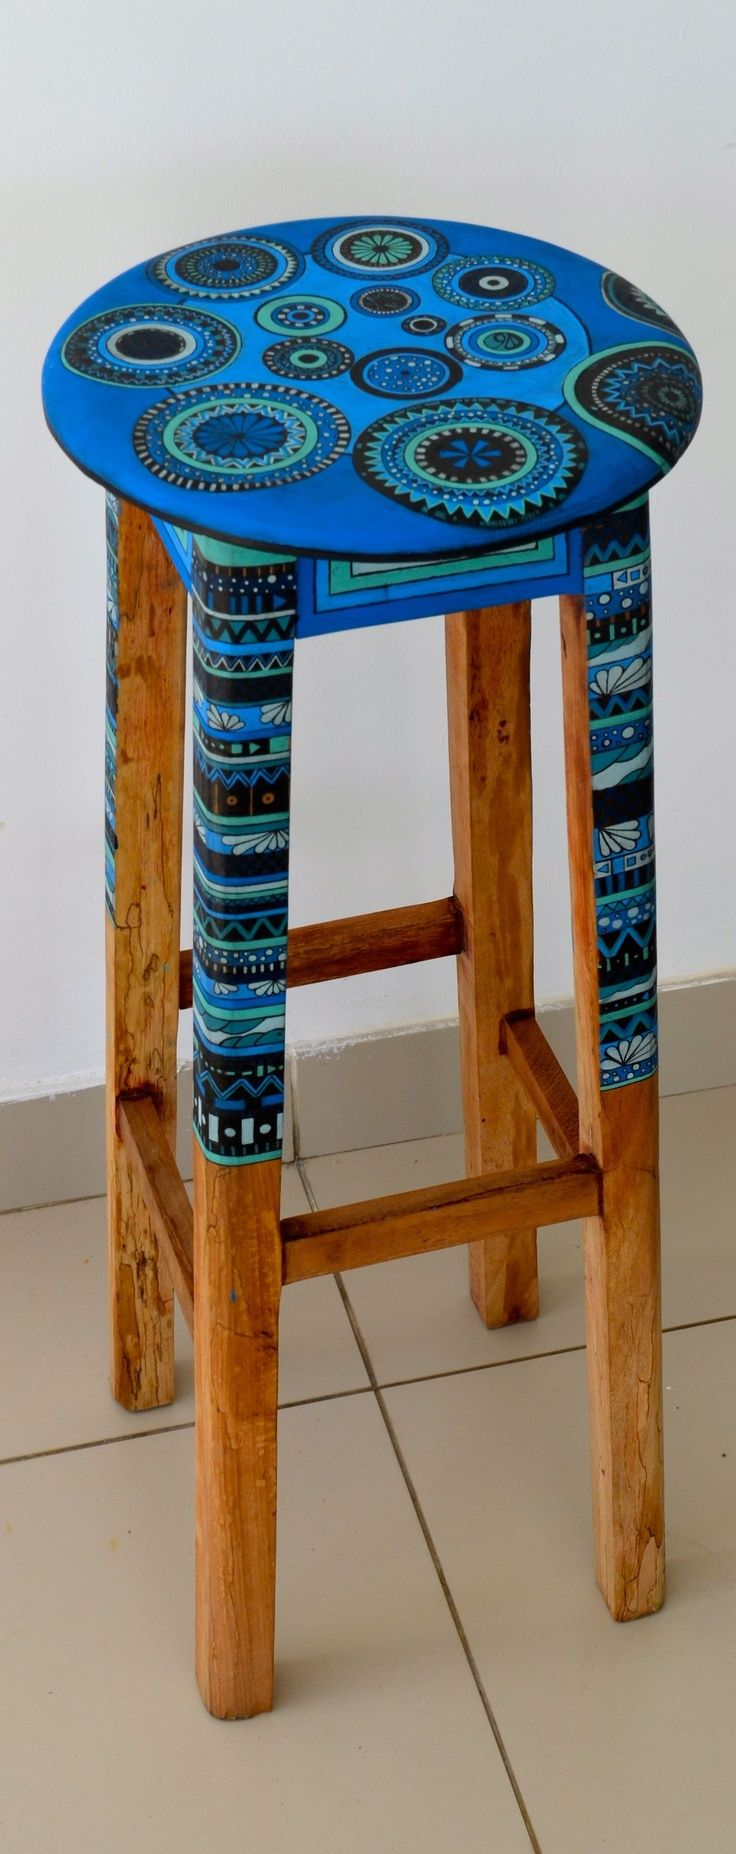 Funky painted furniture ideas - I Like The Partial Painting With Wood Showing Kl